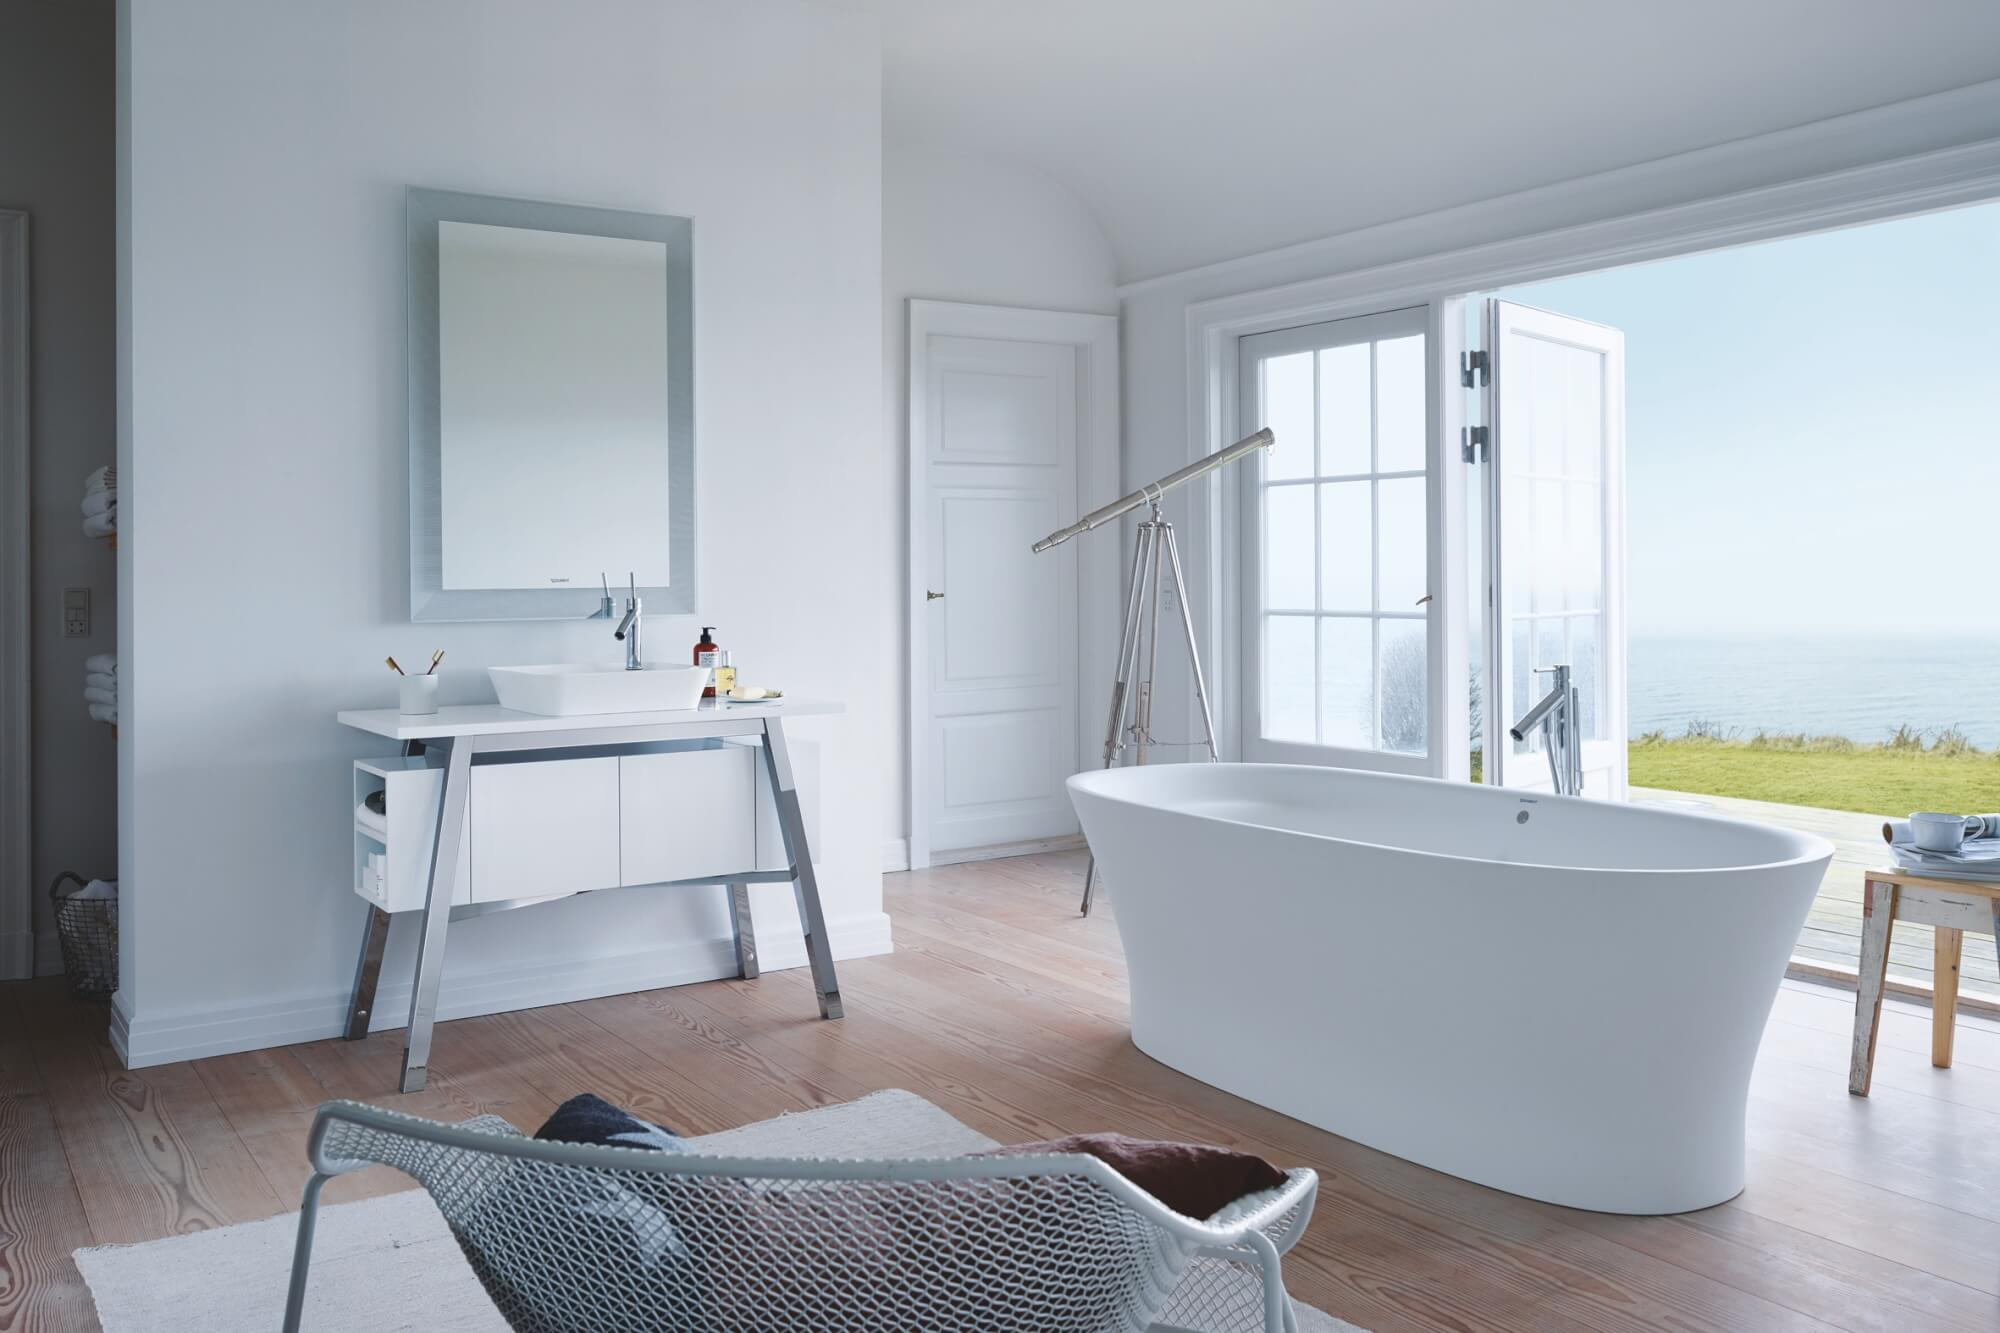 CAPE COD by Starck (DURAVIT) - Bathrooms